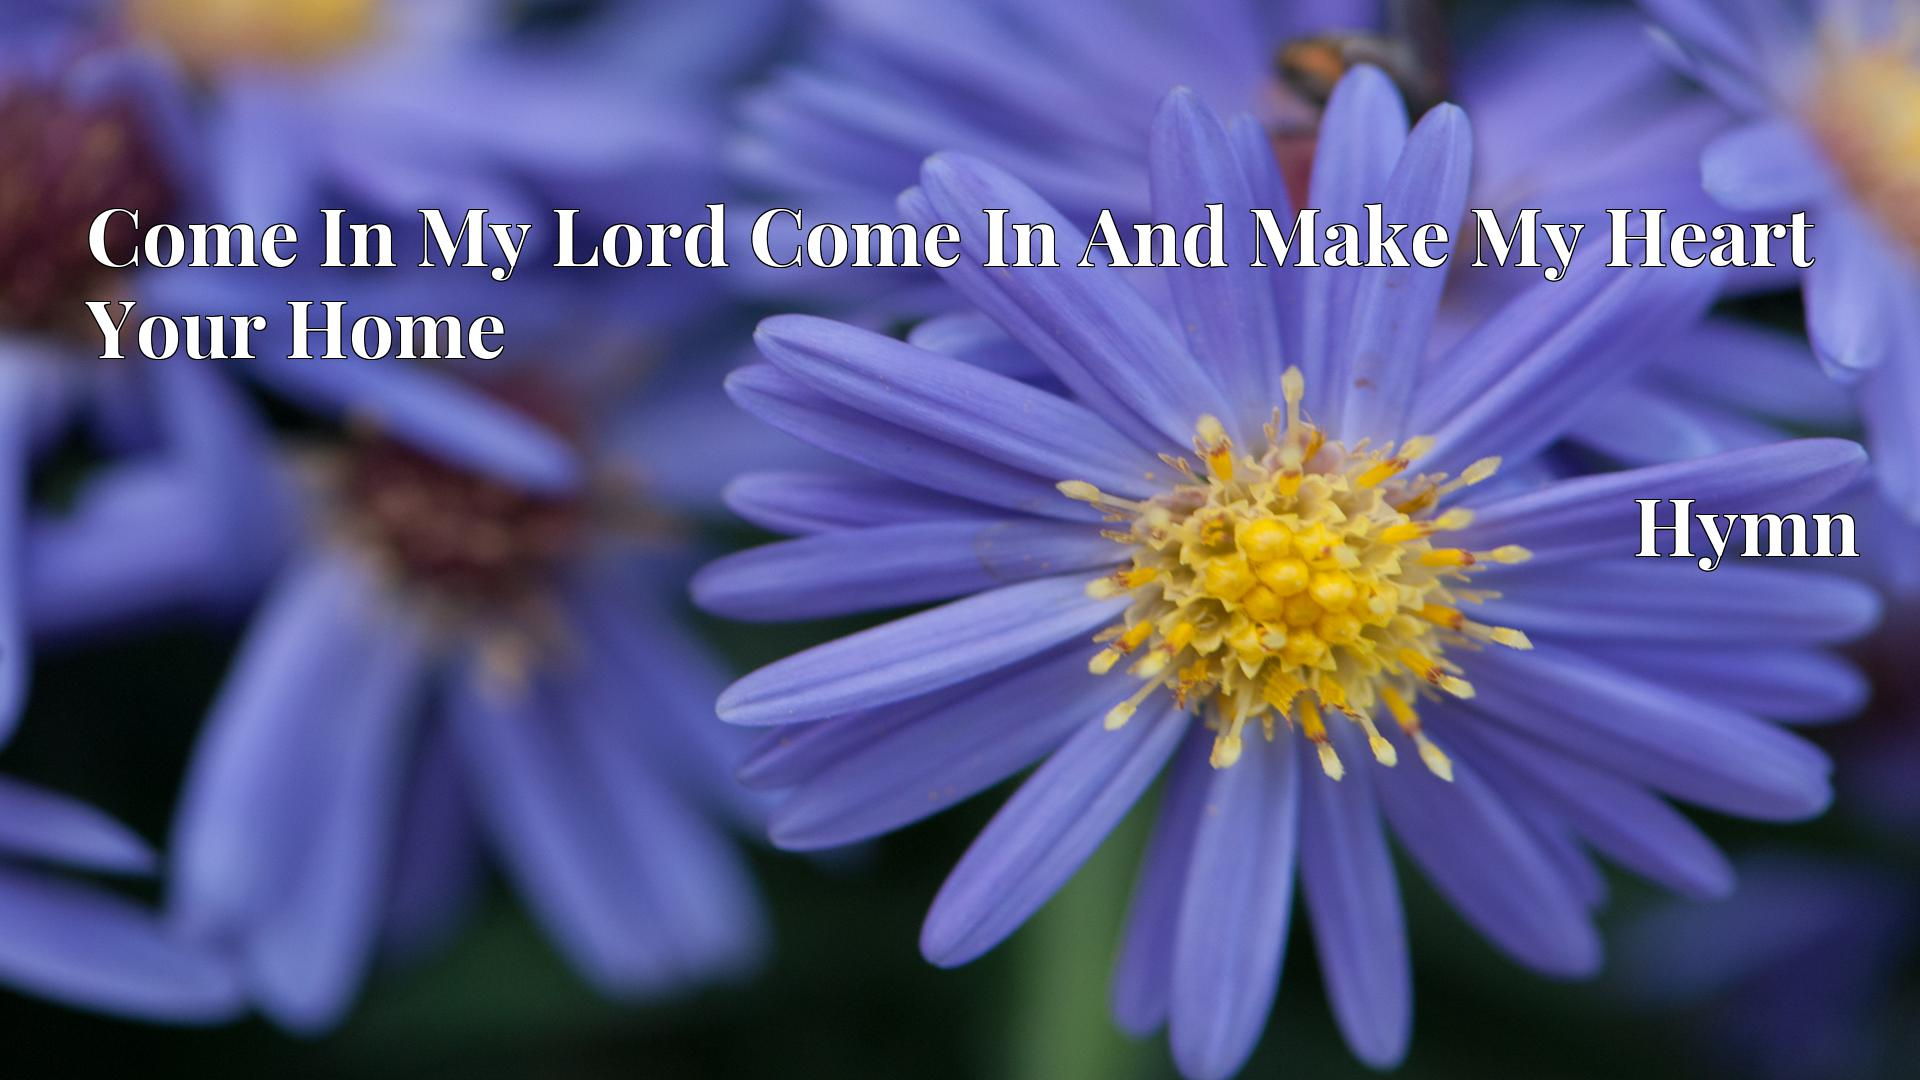 Come In My Lord Come In And Make My Heart Your Home - Hymn